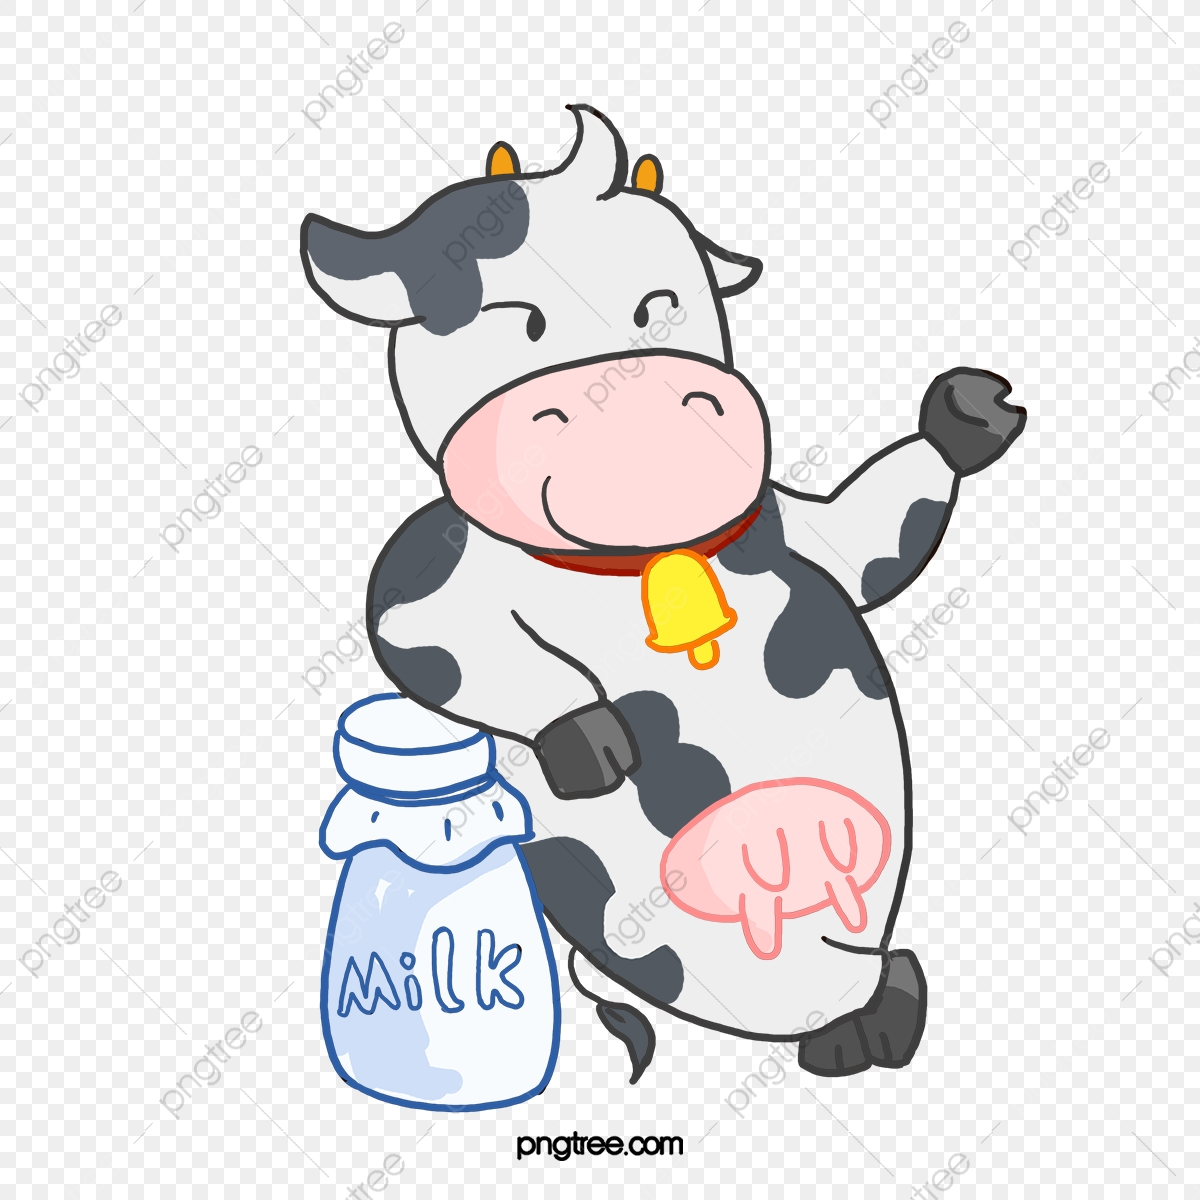 hight resolution of commercial use resource upgrade to premium plan and get license authorization upgradenow dairy cow cow clipart